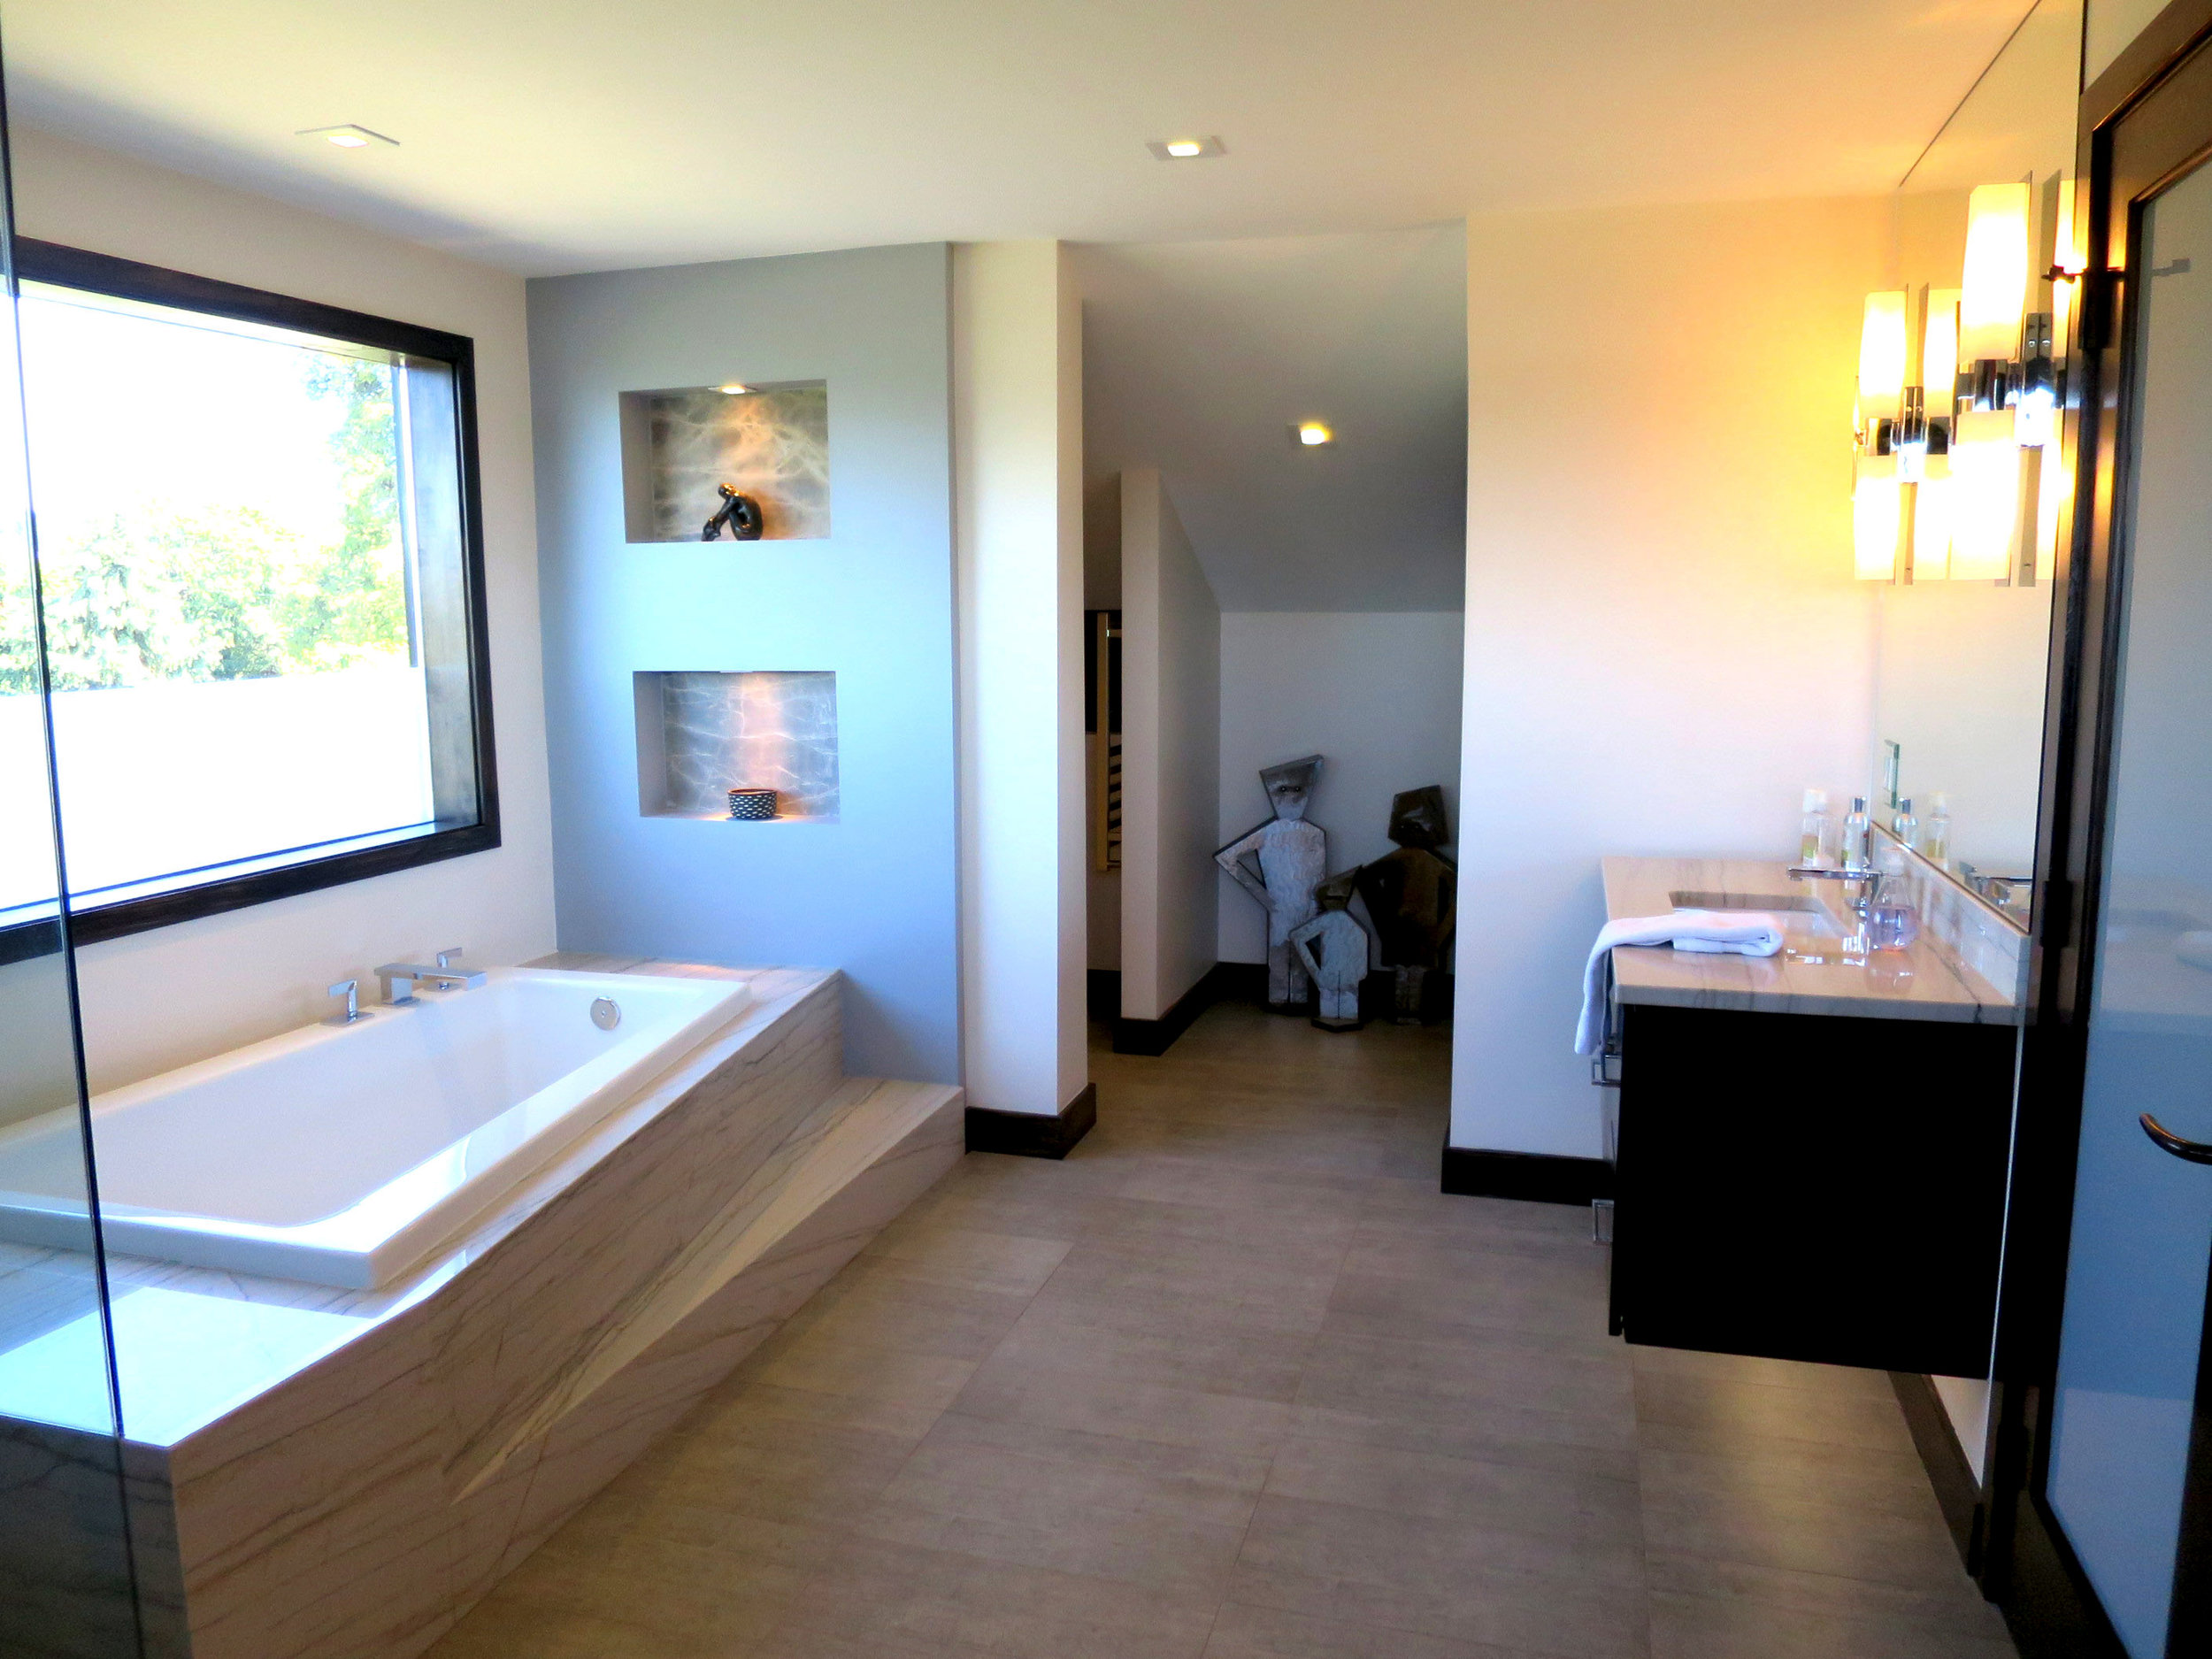 Luxurious Master Bathroom View 2